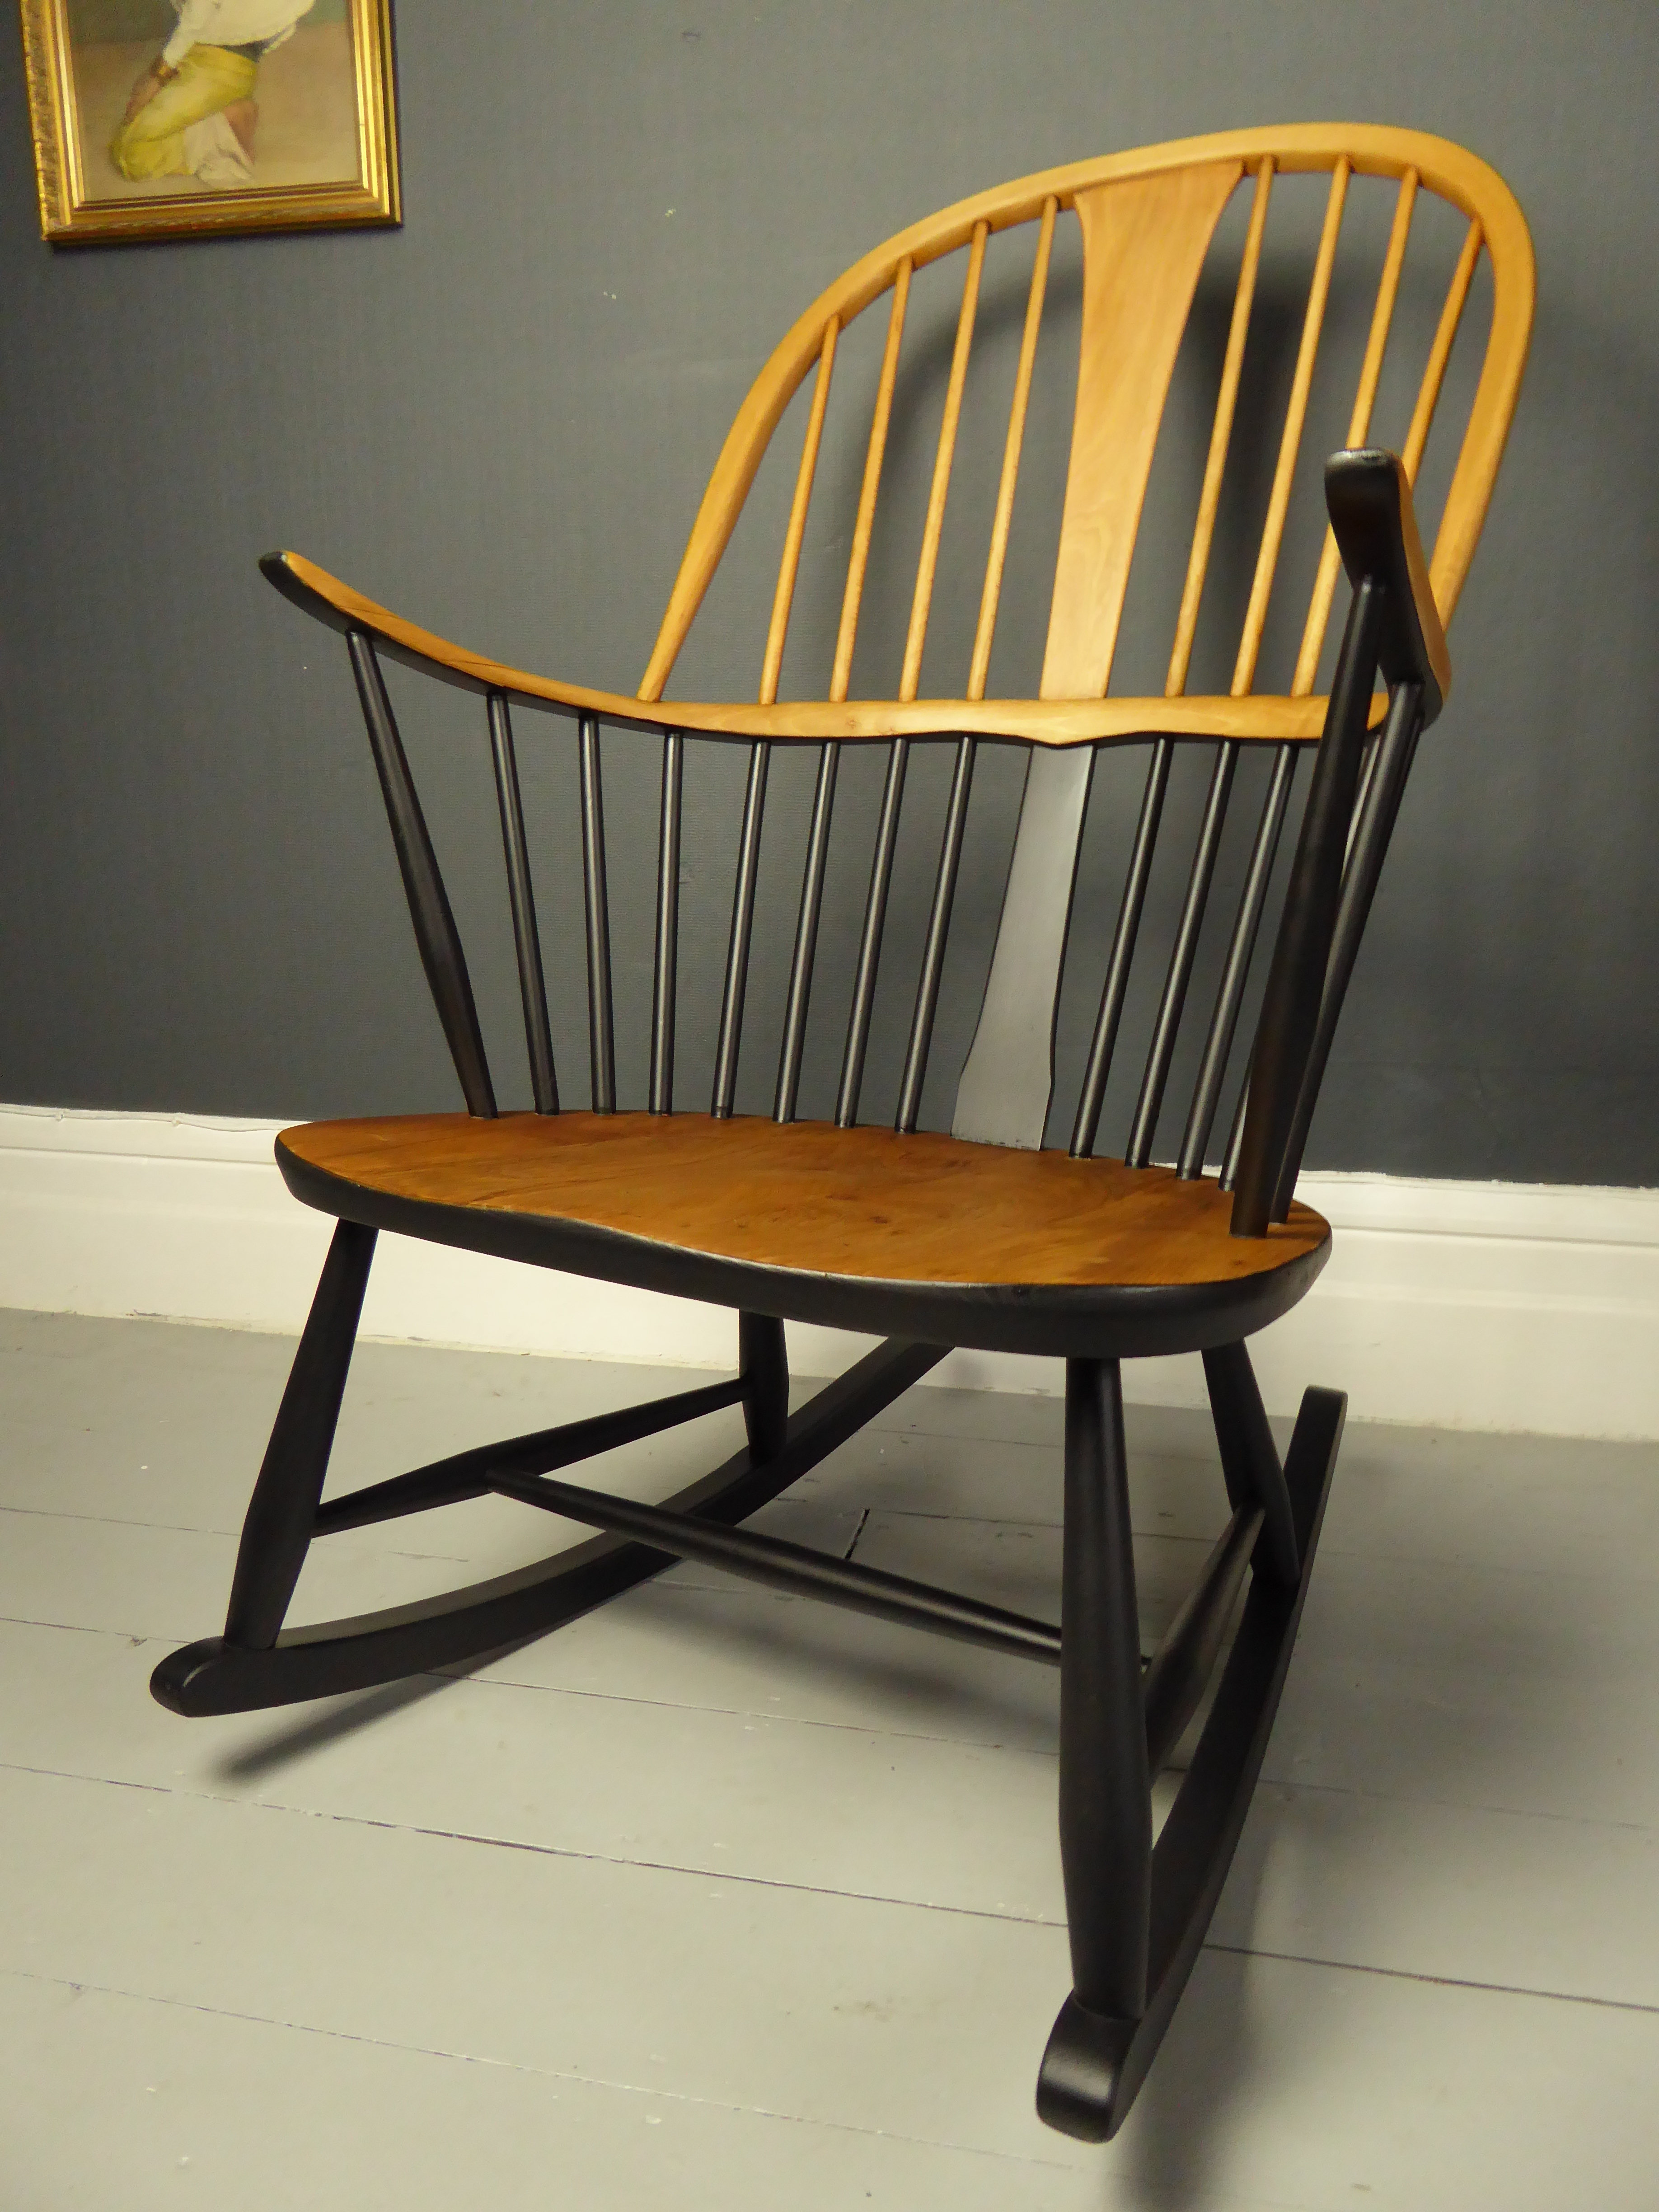 Swell Vintage Retro Mid Century Ercol Double Bow Chairmaker Fireside Rocking Chair 473 Inzonedesignstudio Interior Chair Design Inzonedesignstudiocom